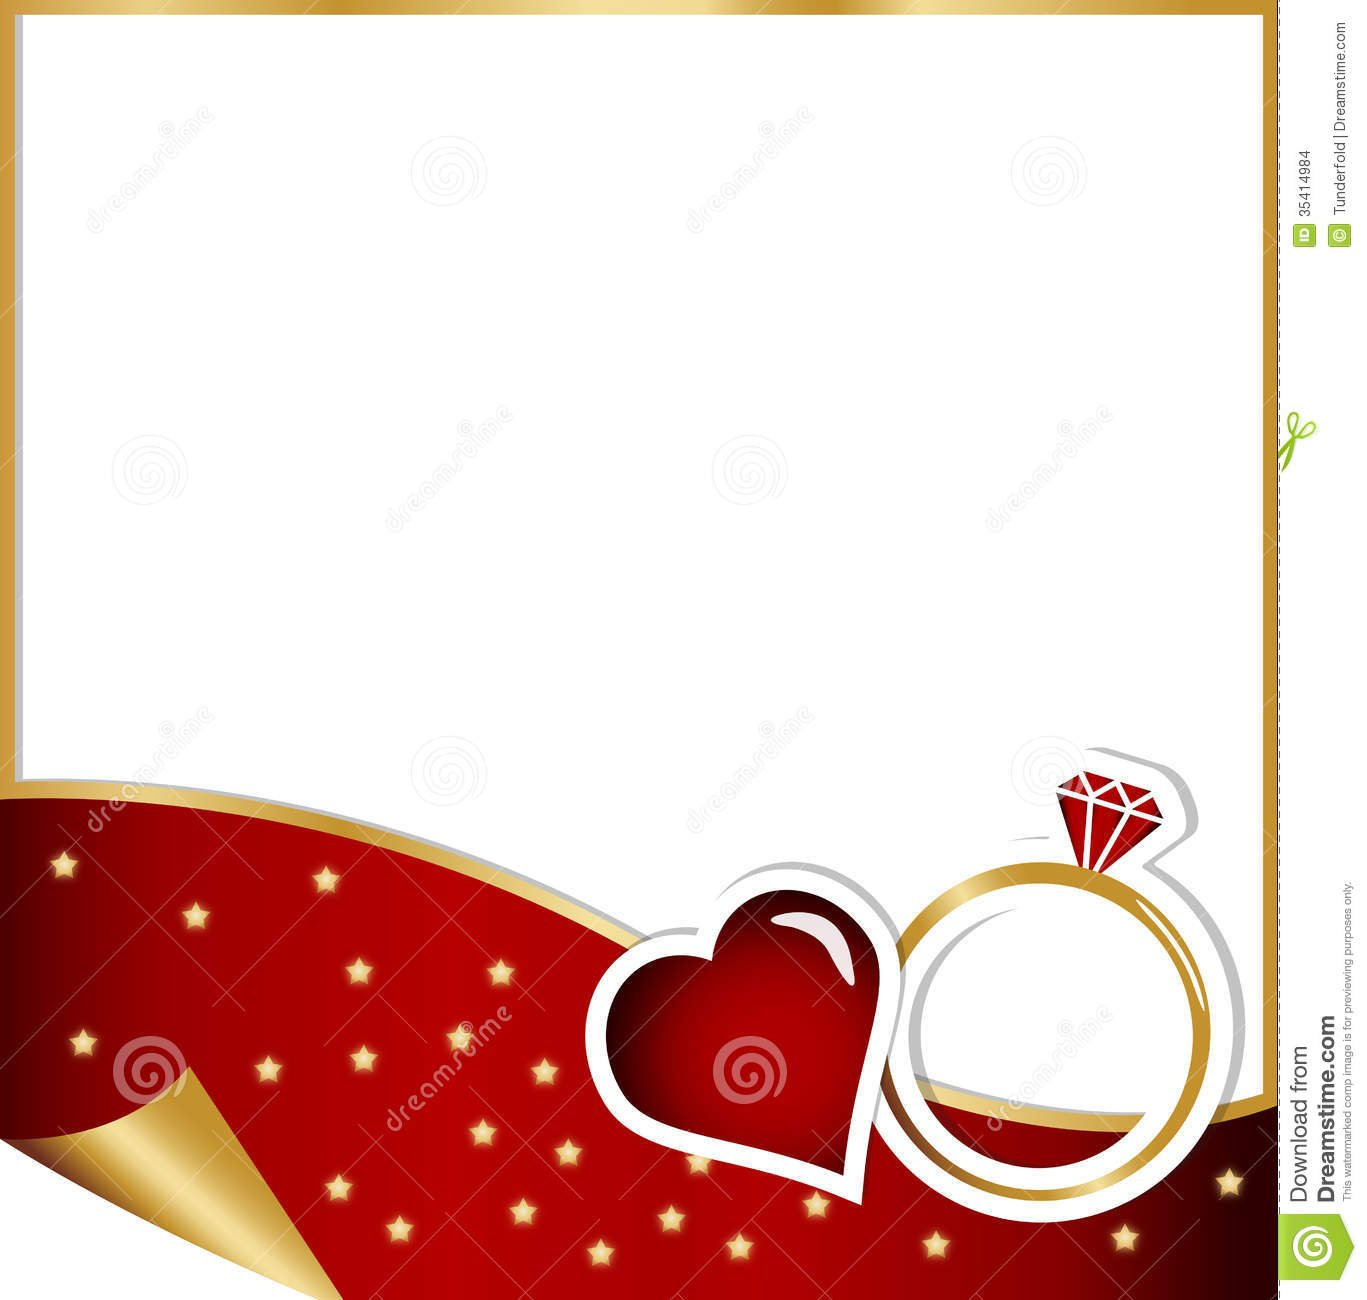 Engagement Card Background 3 » Background Check All